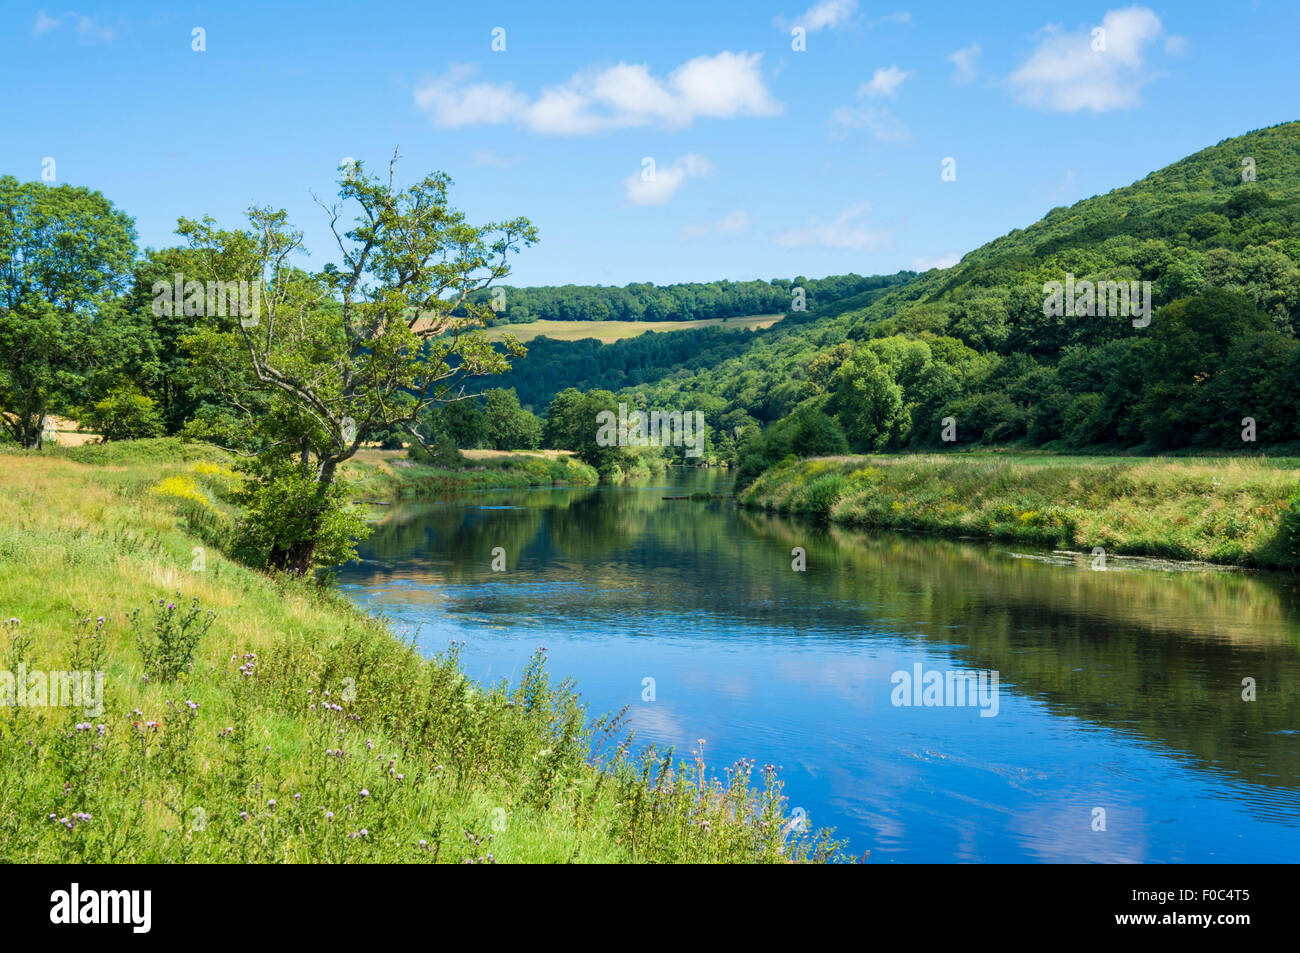 River Wye at Bigsweir, Wye Valley, Monmouthshire, Wales, UK, EU, Europe - Stock Image